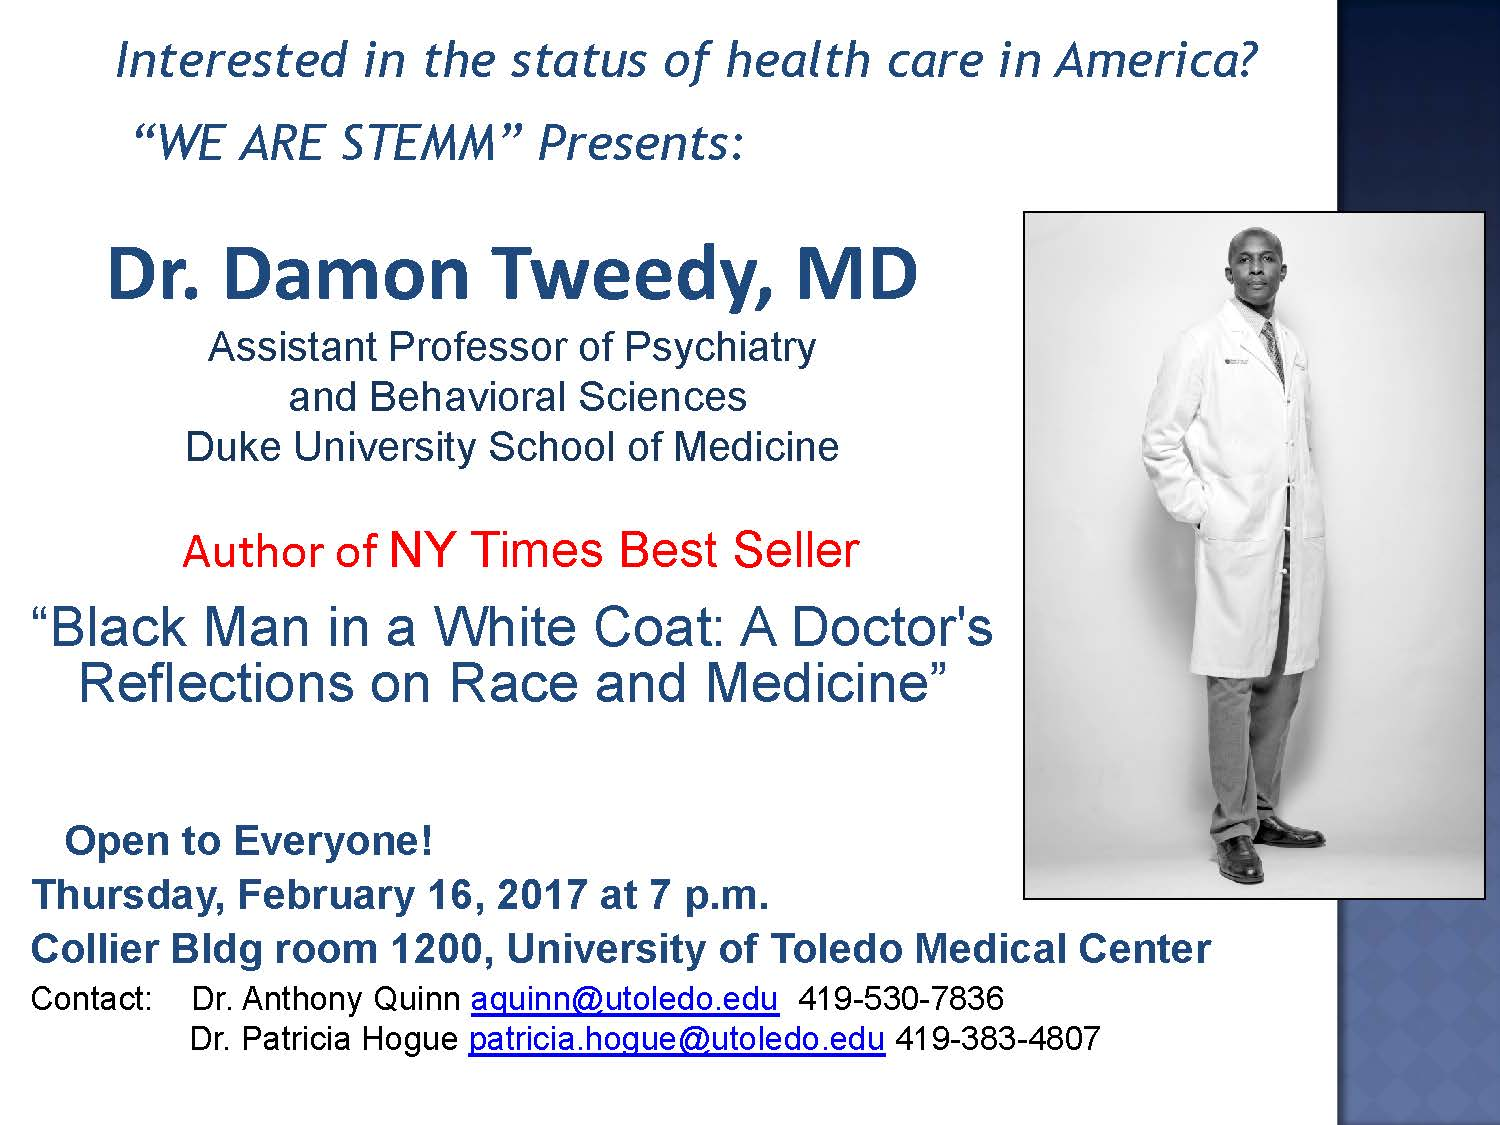 Dr. Damon Tweedy MD